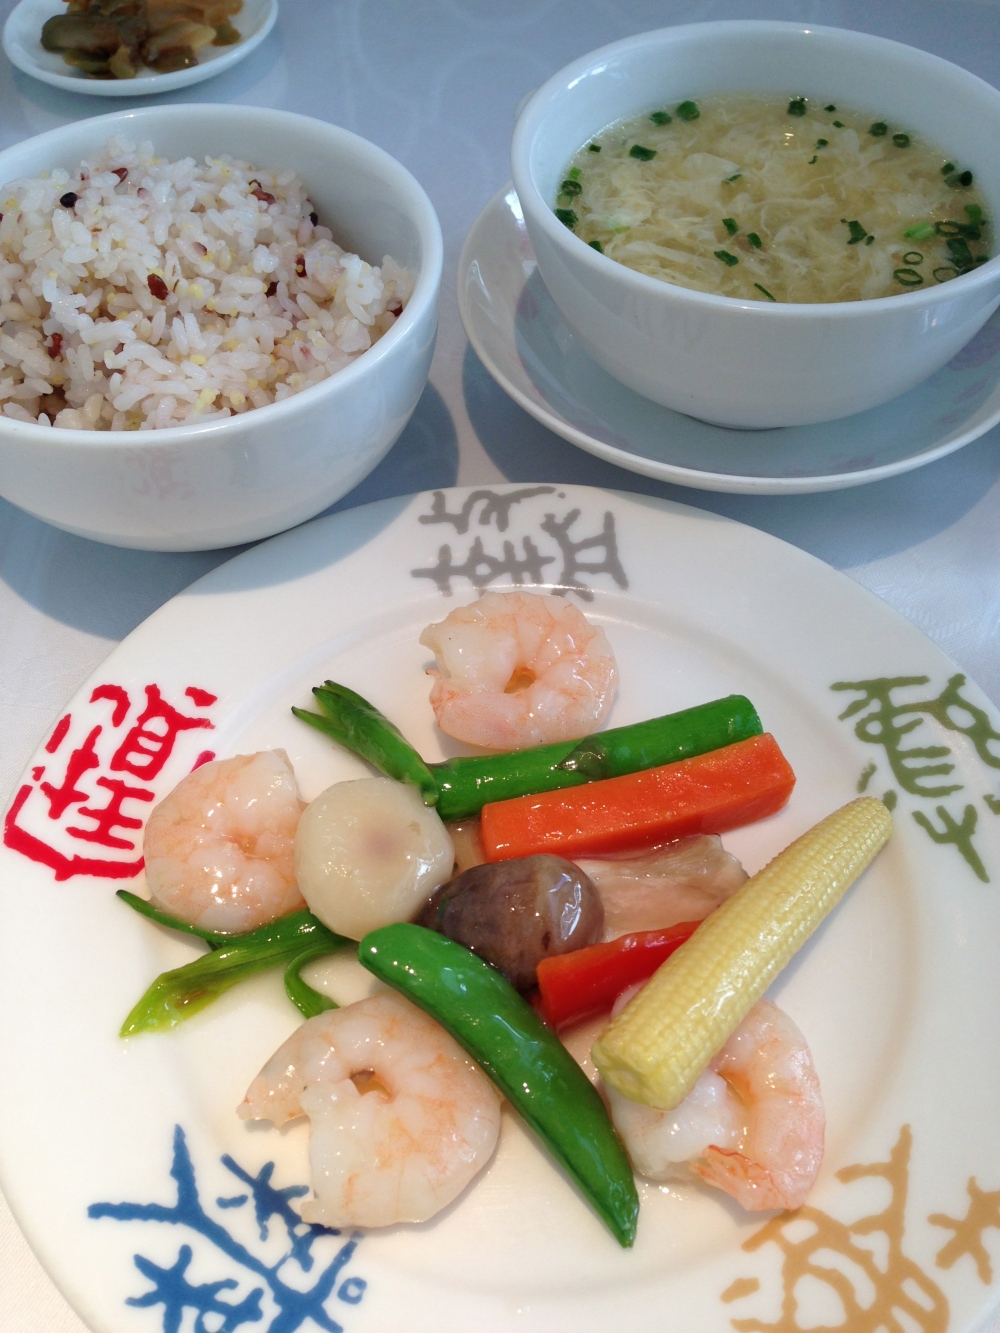 Shrimp stir fried accompanied by a soup and brown rice